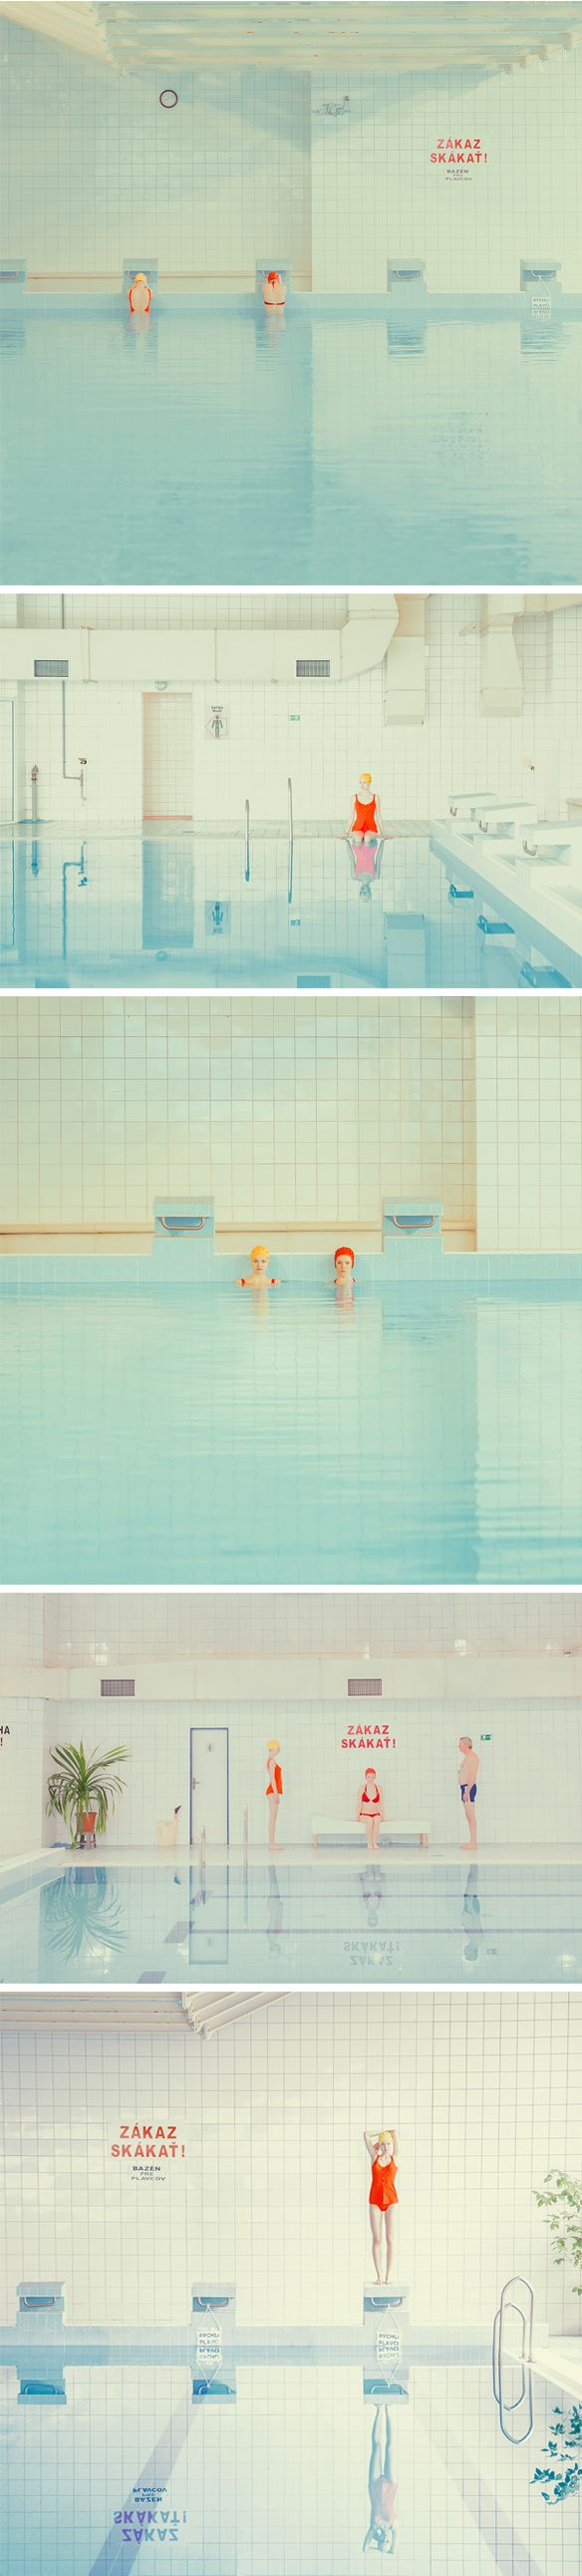 This is the clean and striking work of Slovakian photographer Mária Švarbová.